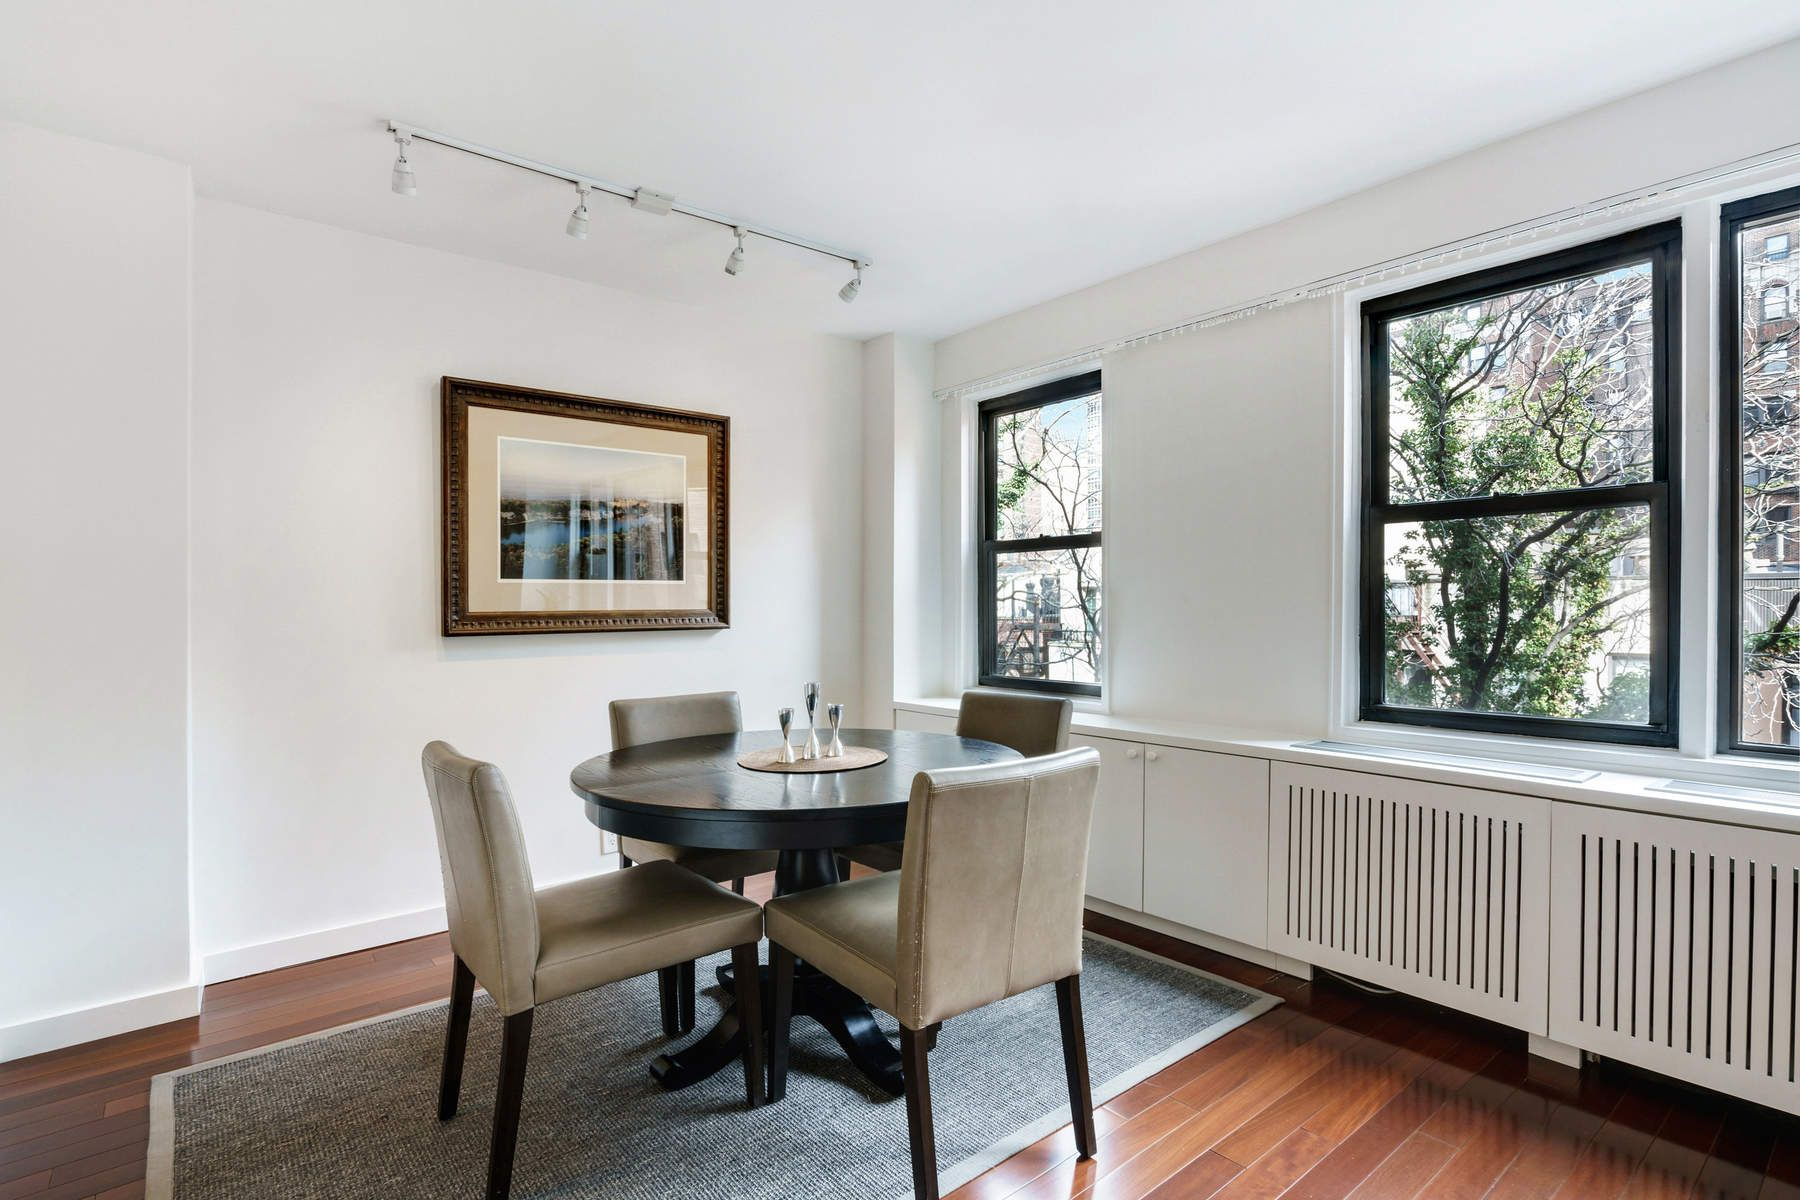 Co-op for Sale at Light and Modern Junior 4 345 East 52nd Street Apt 6AB, Midtown East, New York, New York, 10022 United States